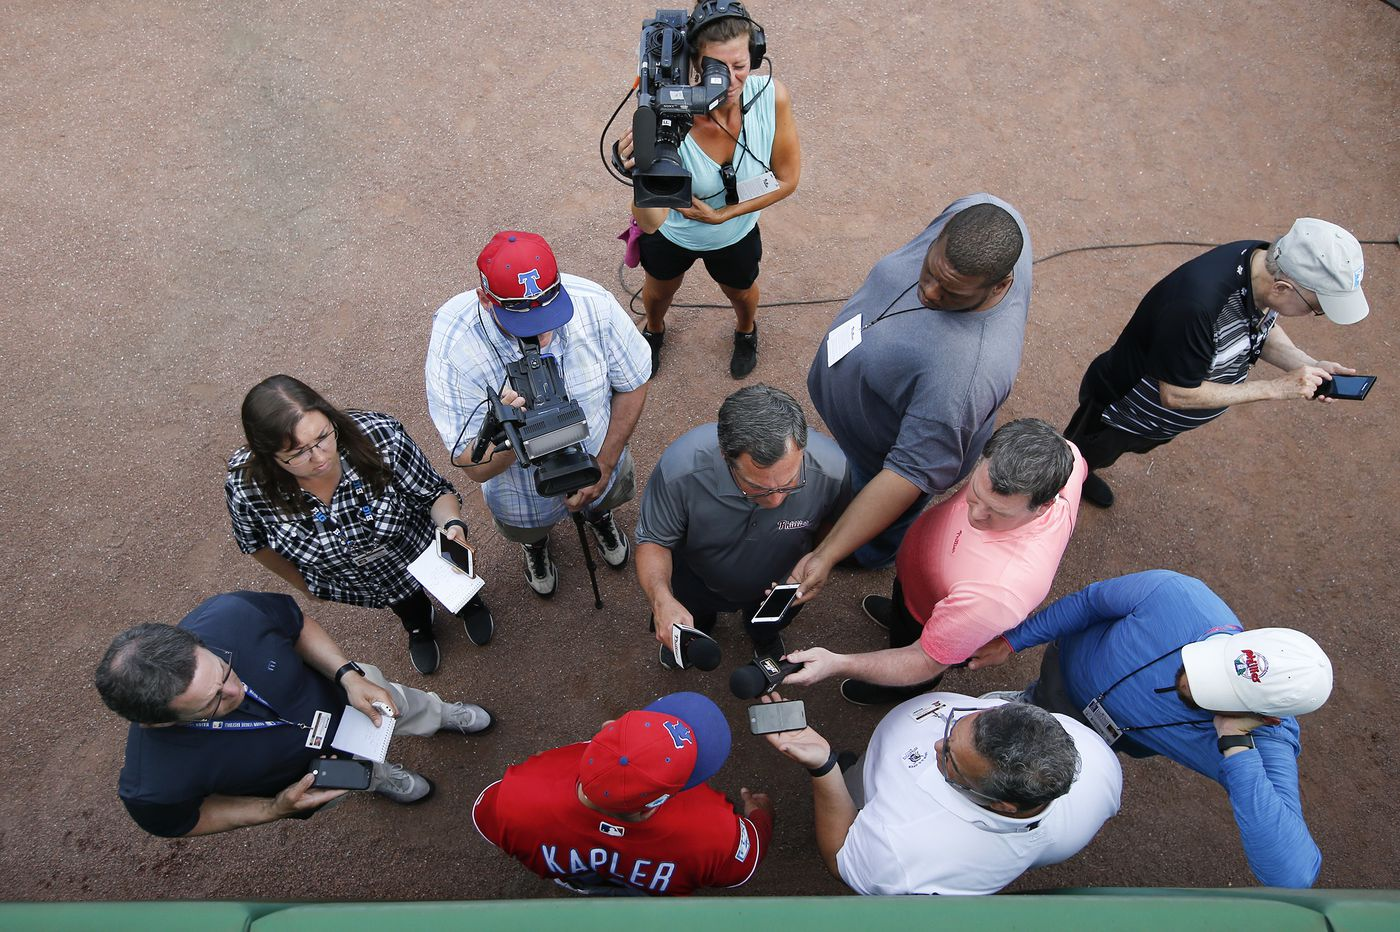 Gabe Kapler aims to be more critical of the Phillies after his supper with Andy MacPhail | Marcus Hayes